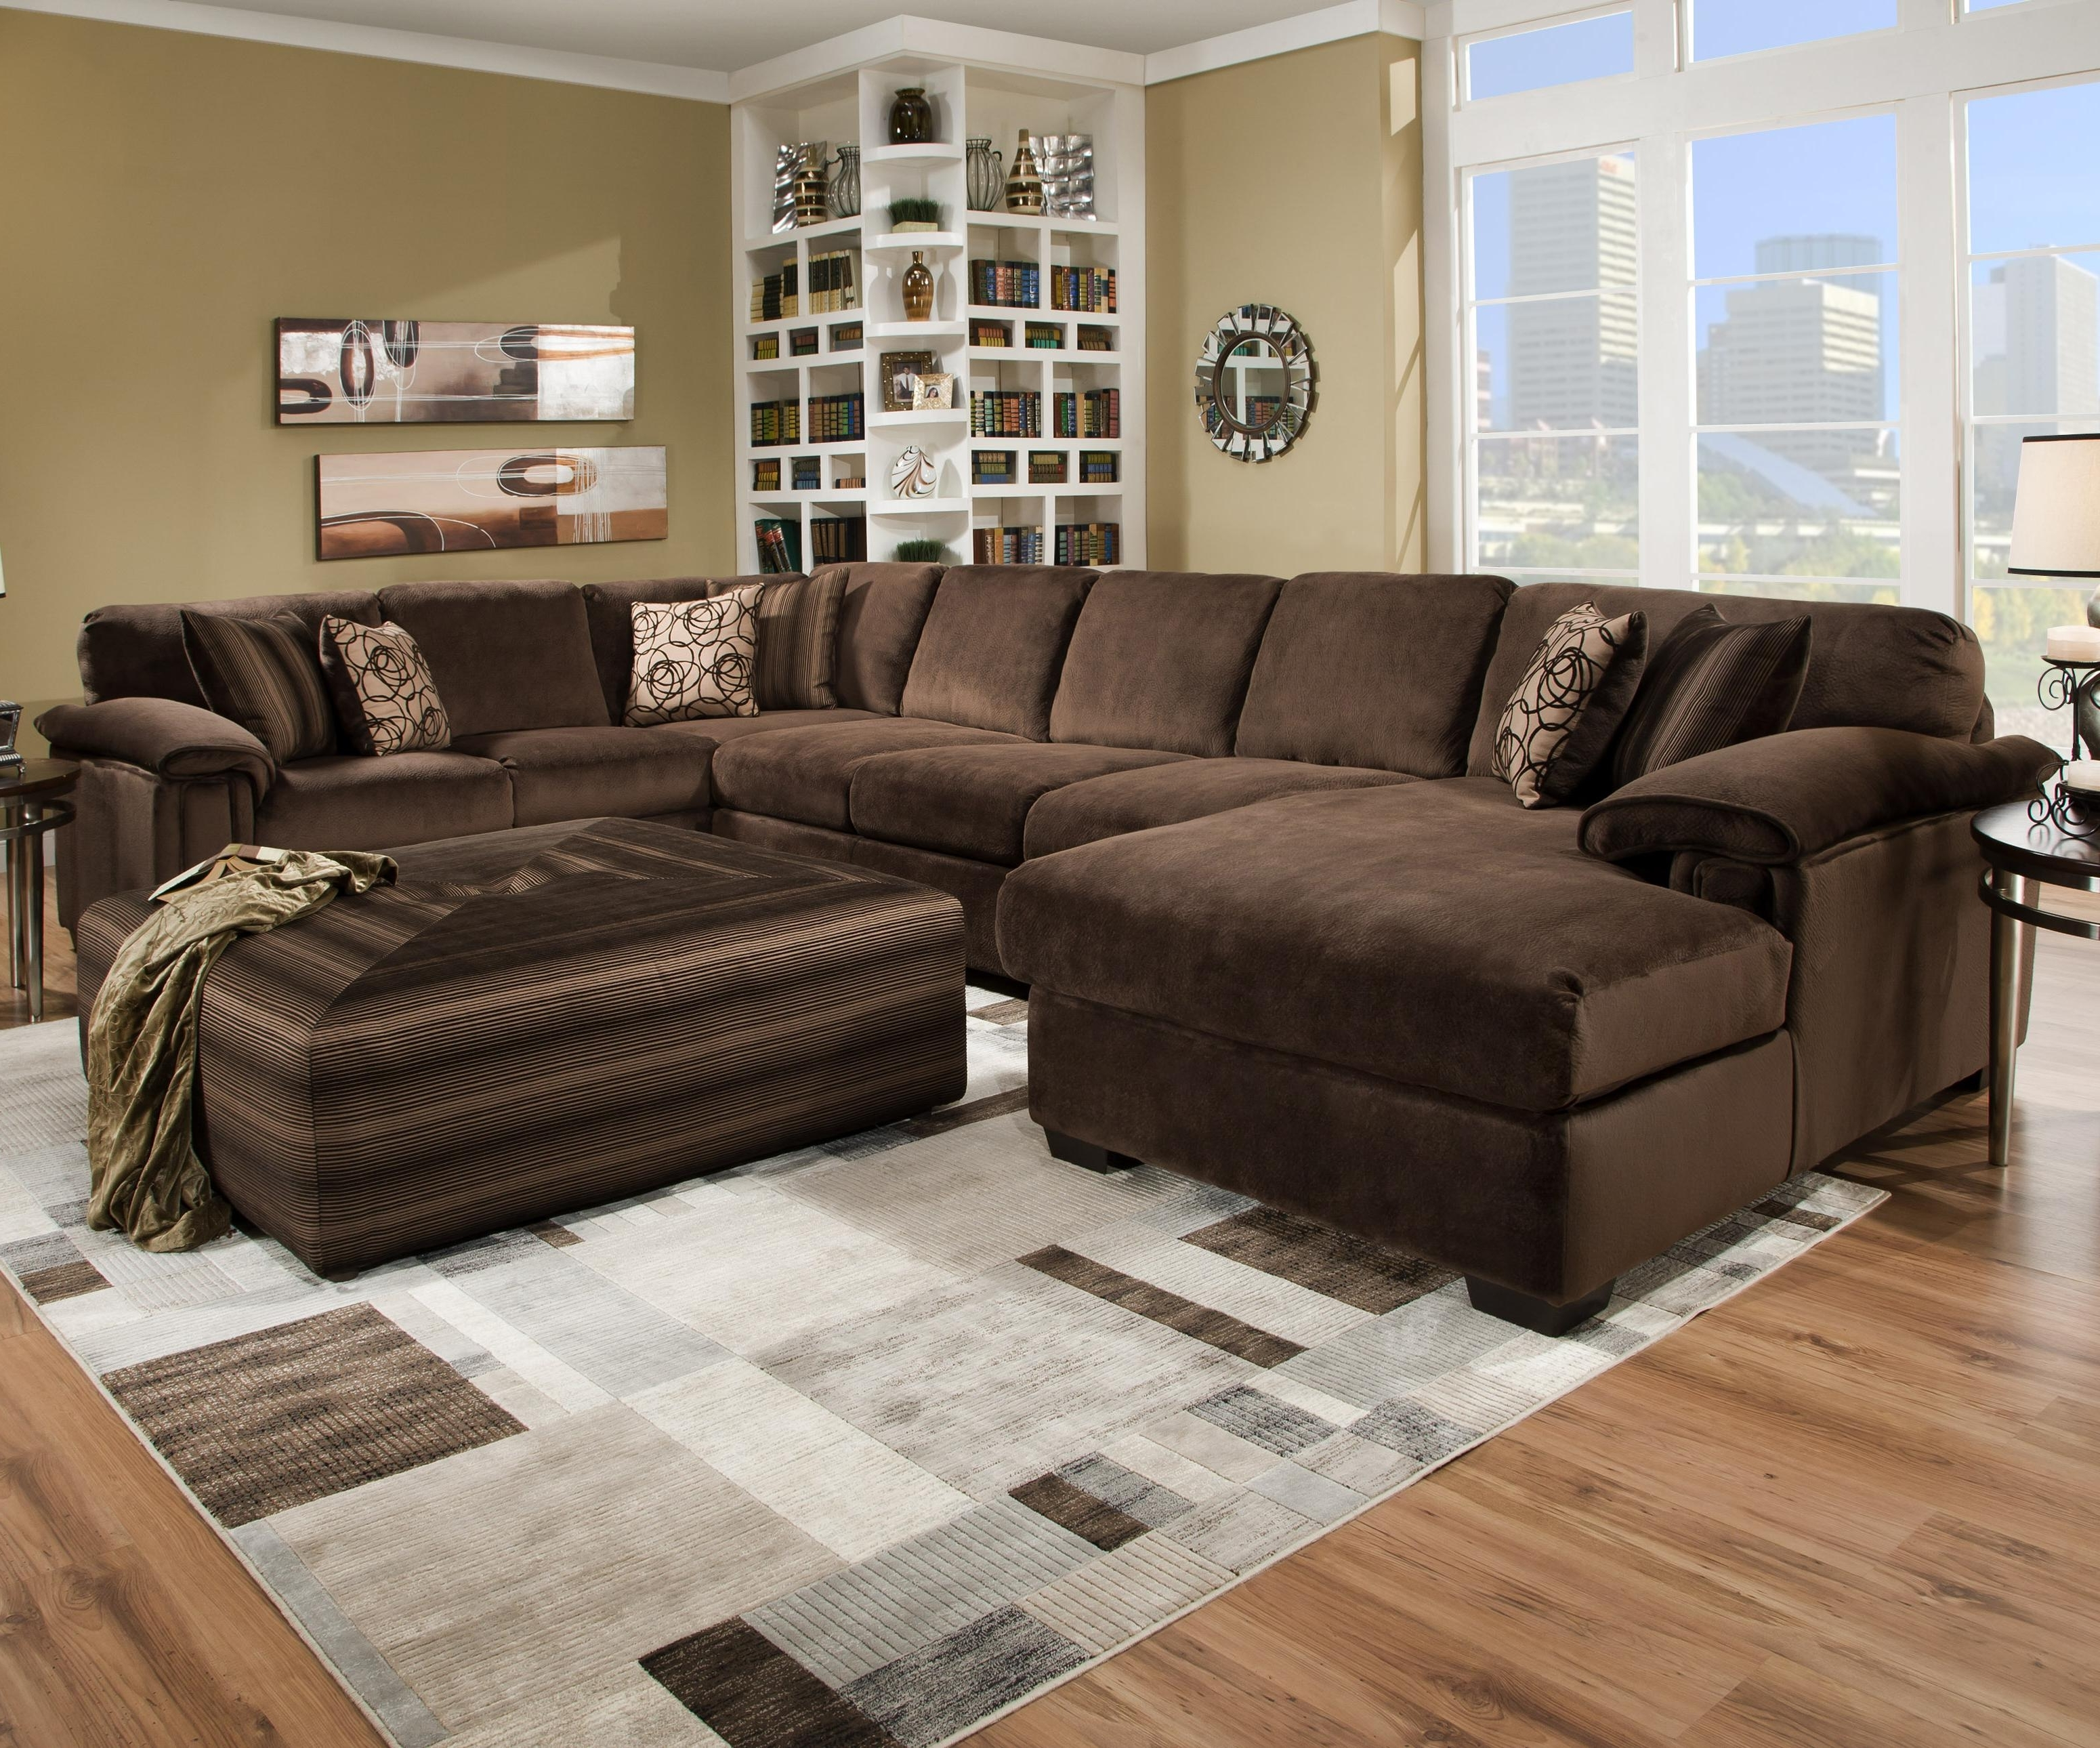 Oversized Ottoman Coffee Tables Within 2017 Sectional Sofas With Oversized Ottoman (View 9 of 15)